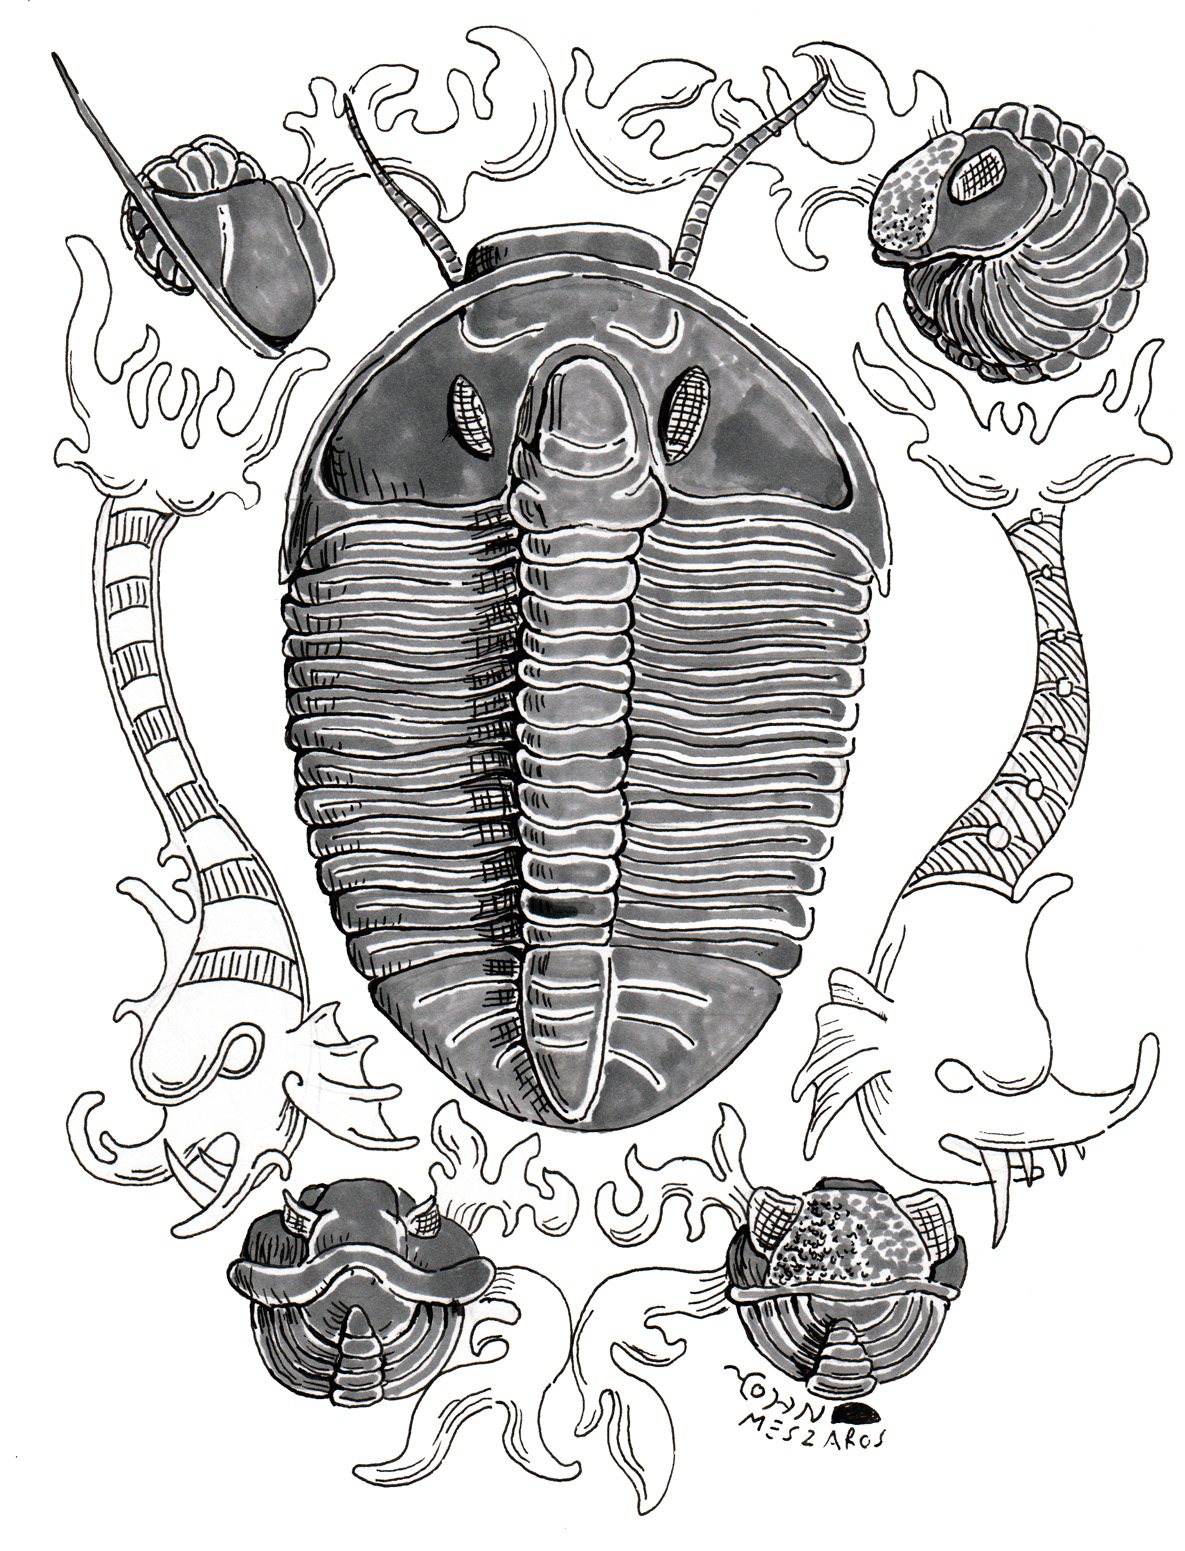 Black and white digital illustration with grey watercolour style shading. in the centre is a classically posed (dorsal) trilobite,it is very large and bug like. In each corner of the image is another trilobite curled into a ball, all different species shown from different angles. alongside the edges of the illustration are medieval style sea monsters and waves that you might expect to see on an old map. they are not shaded so they do not draw the eye like the trilobites.